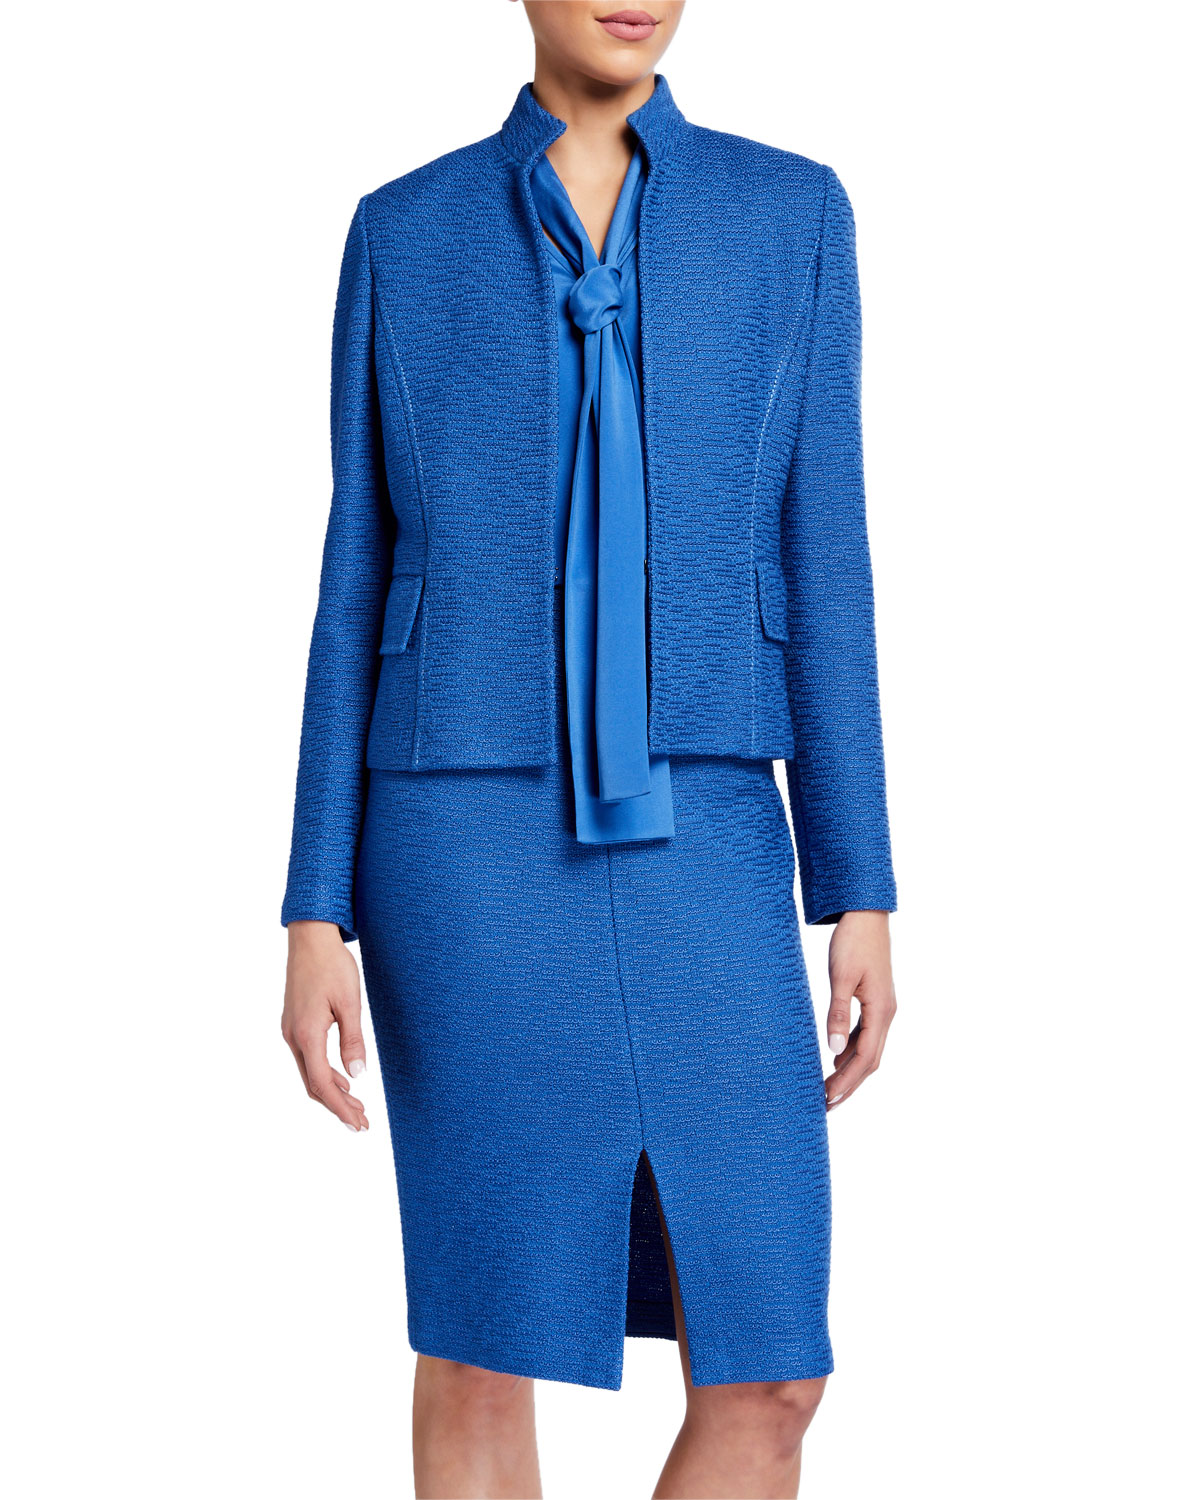 St. John Collection Shantung Ottoman High-Neck Jacket